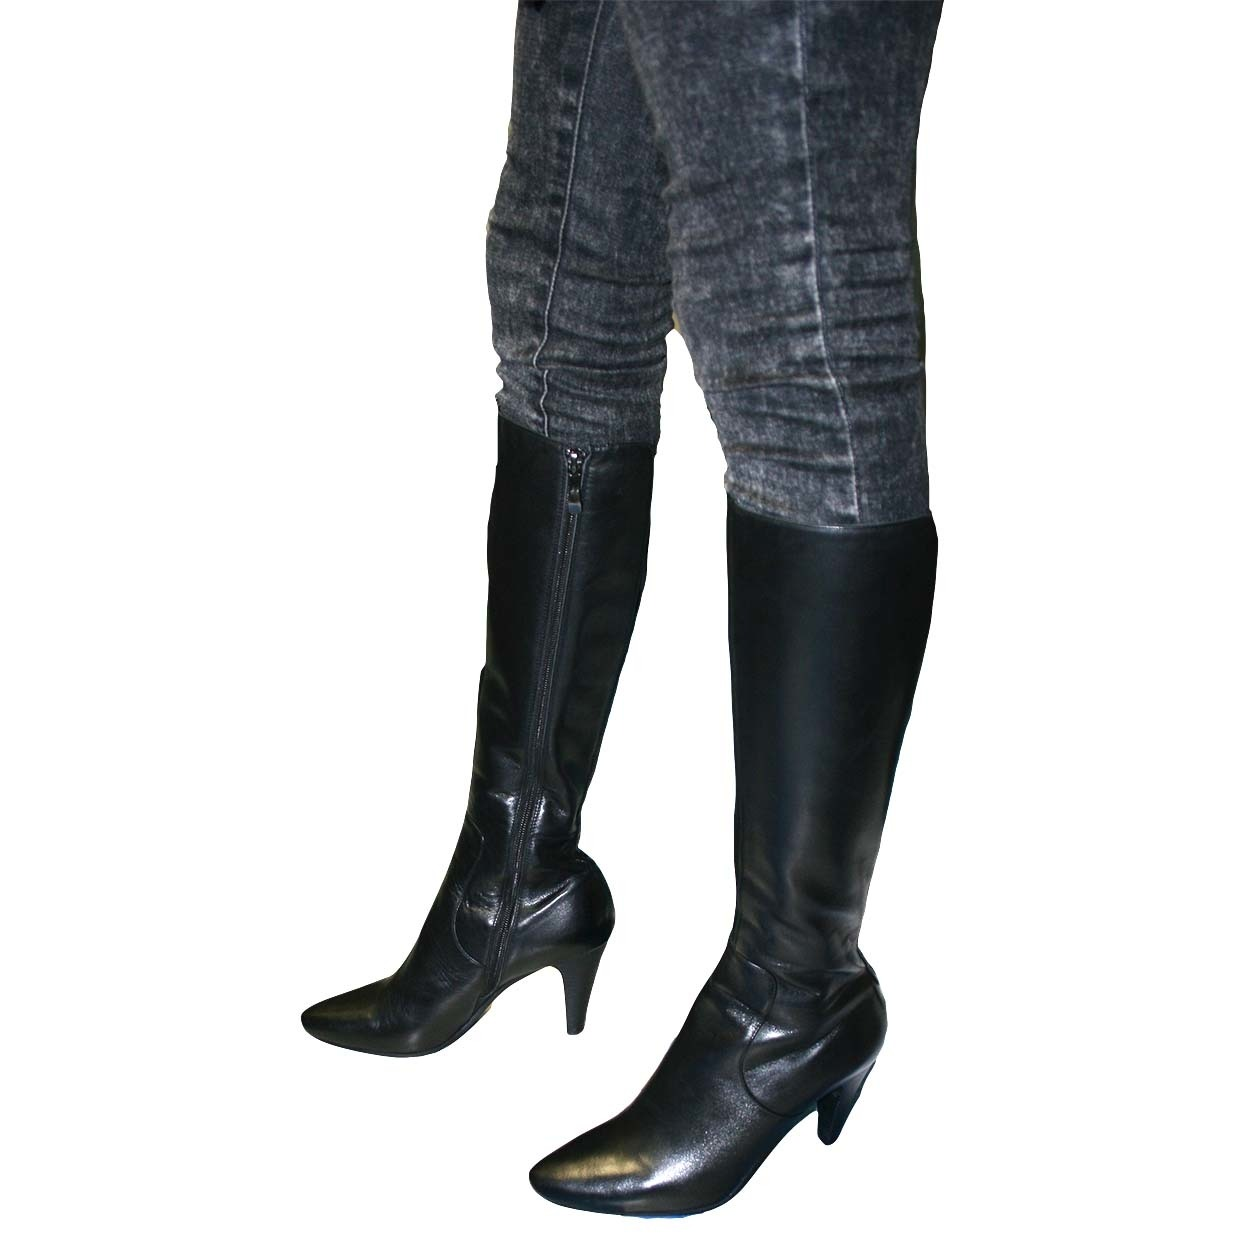 leather boots for women solemani womenu0027s paradise black leather boots x-slim calf ymovmce